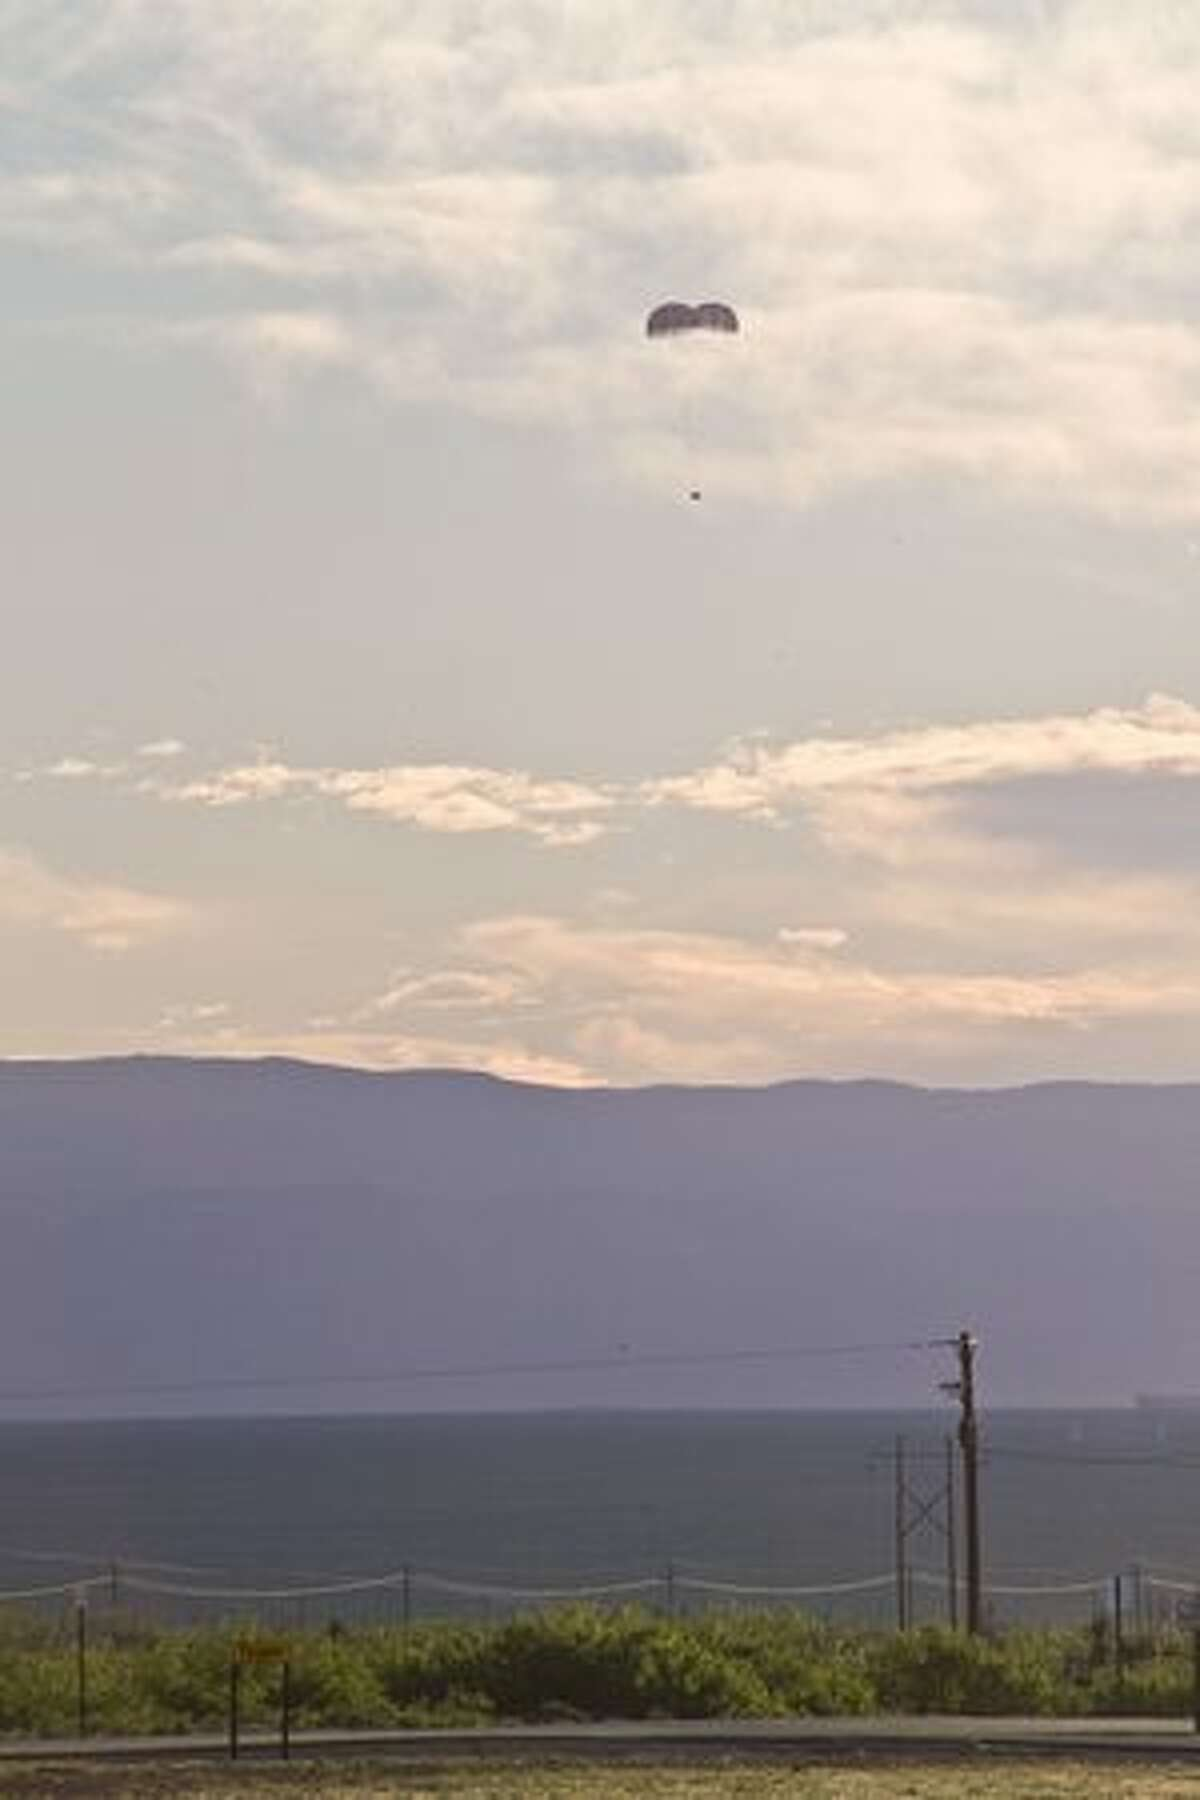 NASA Orion crew module floats back to Earth during a test of its abort system at White Sands Missile Range, N.M.